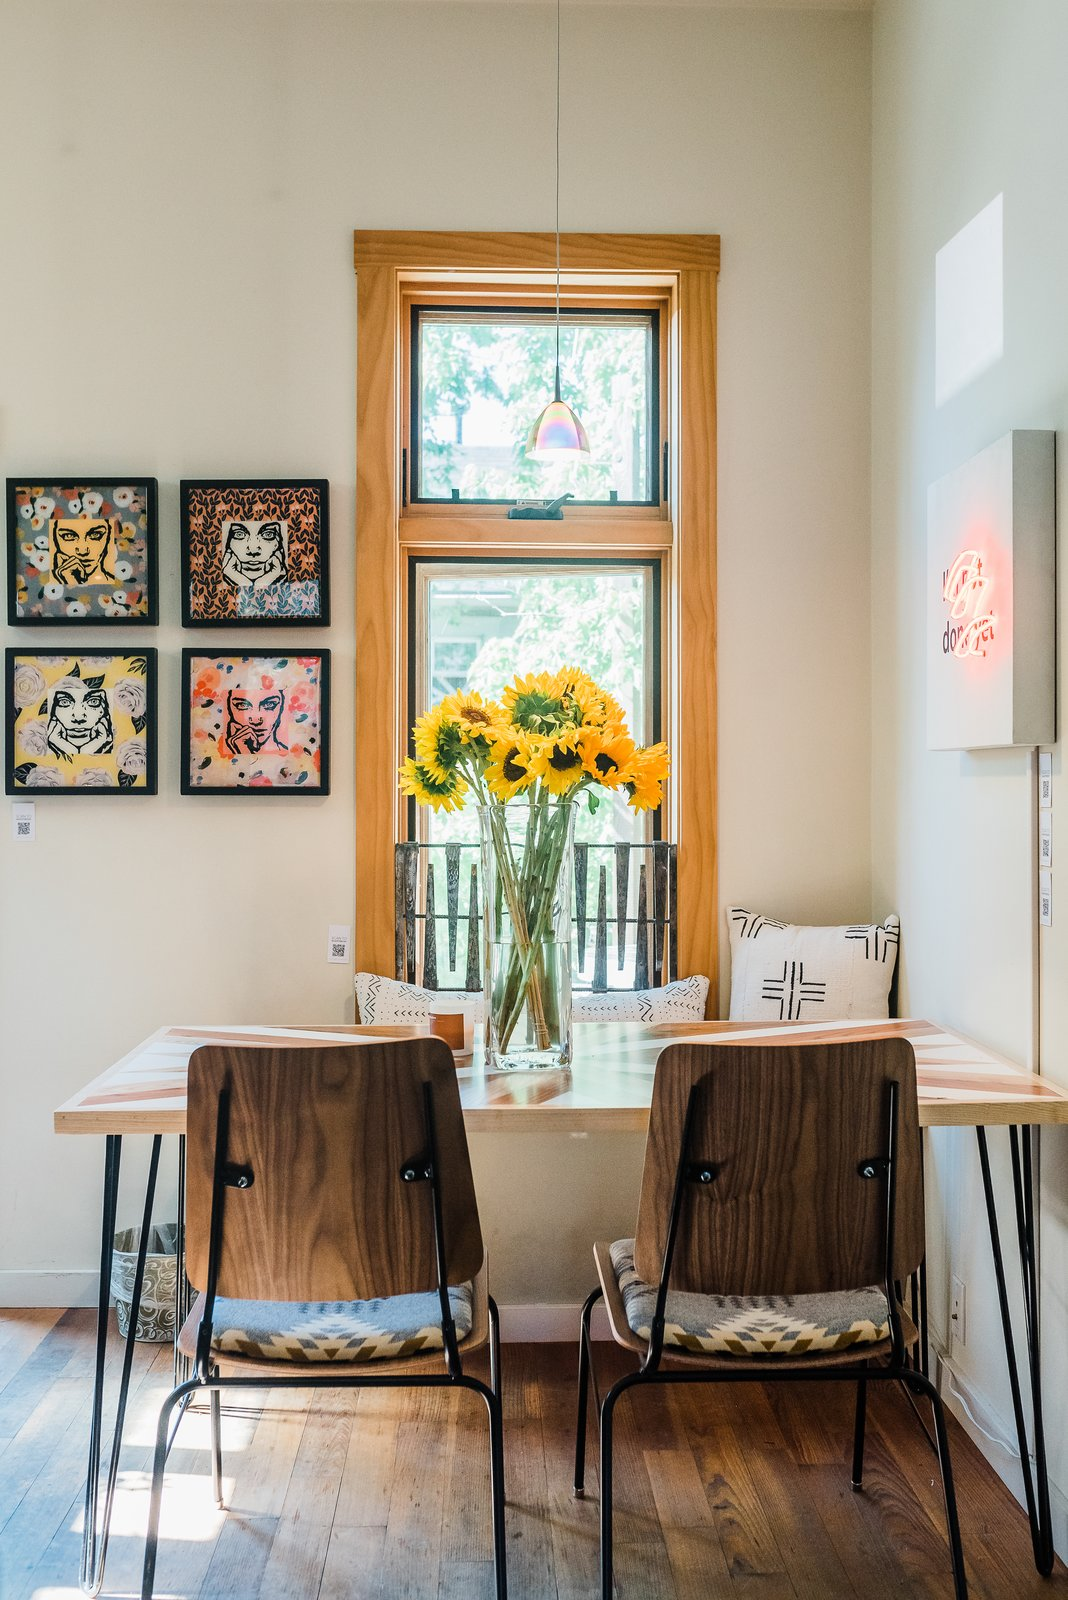 Dining Room, Medium Hardwood Floor, Bench, Table, Chair, Accent Lighting, Wall Lighting, and Storage Intimate + quirky dining nook in The Sursy GandyHouse! Everything is shoppable.  Meet The Makers: 'THE CARSON' SIDE CHAIRS / Onefortythree (Henderson, NV) 'THE SURSY' TABLE / Protea & Pine (Denver, CO) 'NOT DONE YET' NEON ART / Scott Young (Denver, CO) PILLOWS / Olive & Olde's (Denver, CO) 'FACES' COLLECTION / WCB Designs (Nashville, TN)  The Sursy GandyHouse by The Sursy